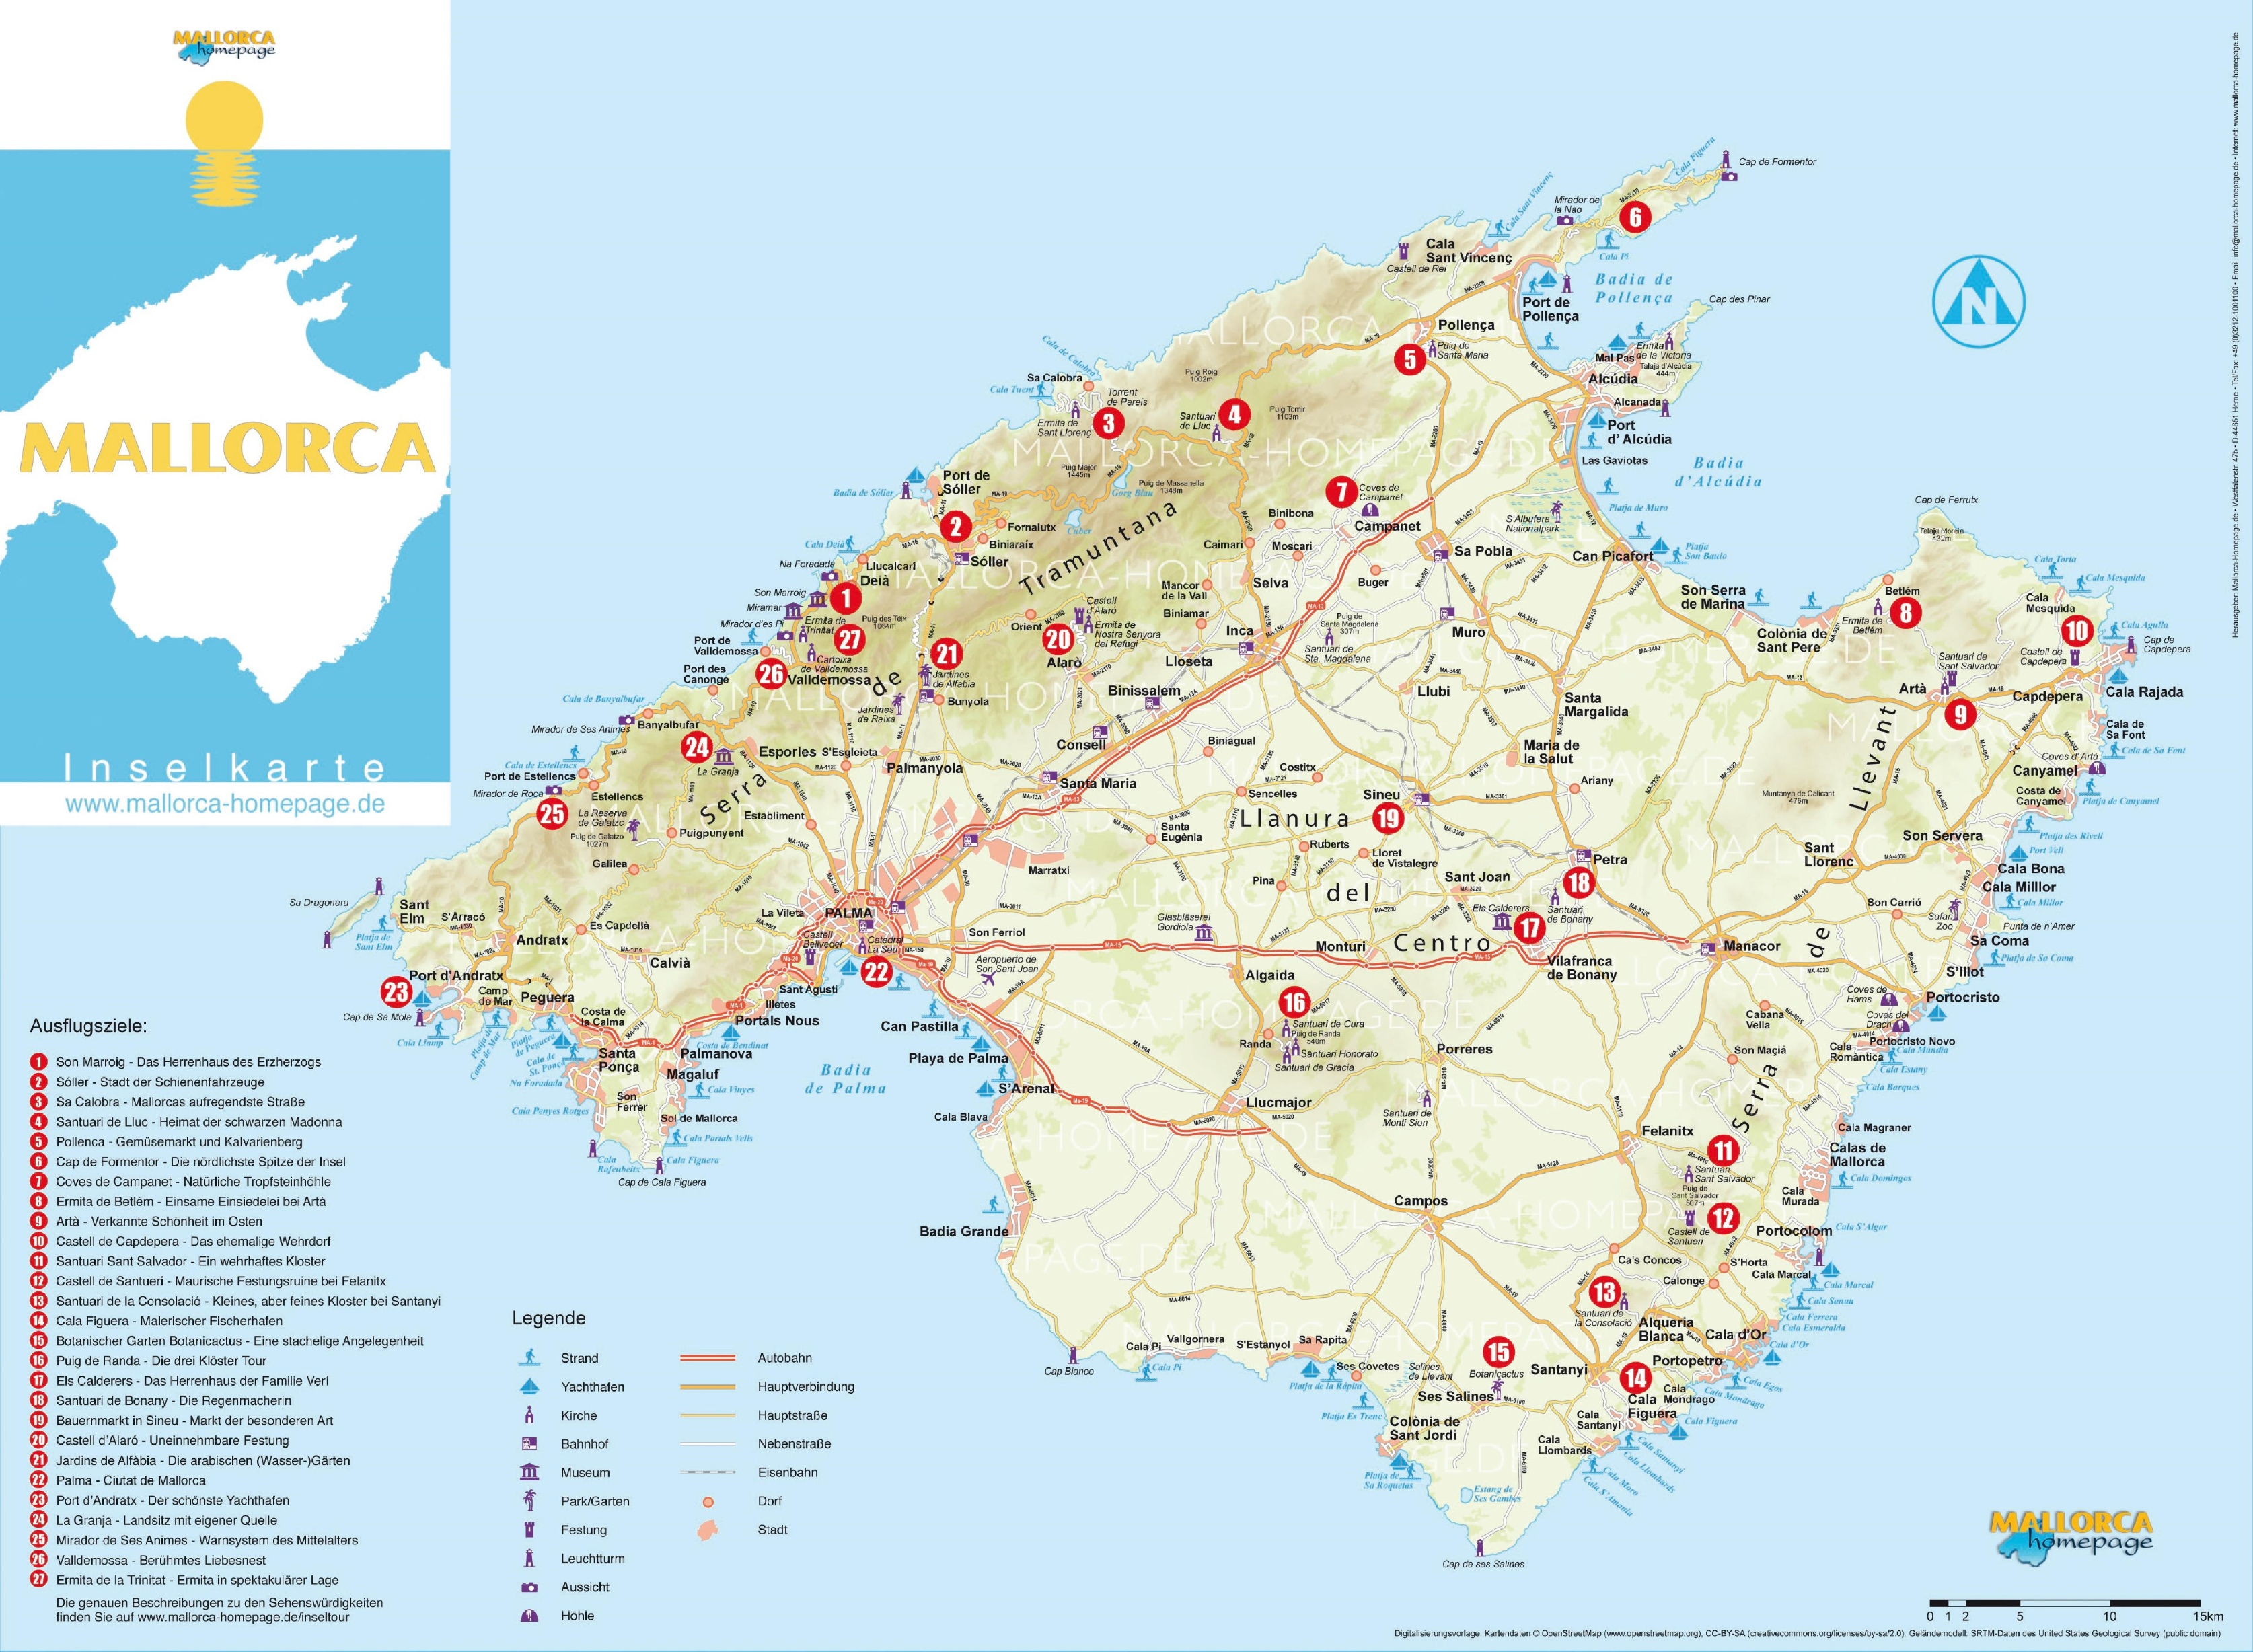 Majorca Maps Balearic Islands Spain Map of Majorca Mallorca